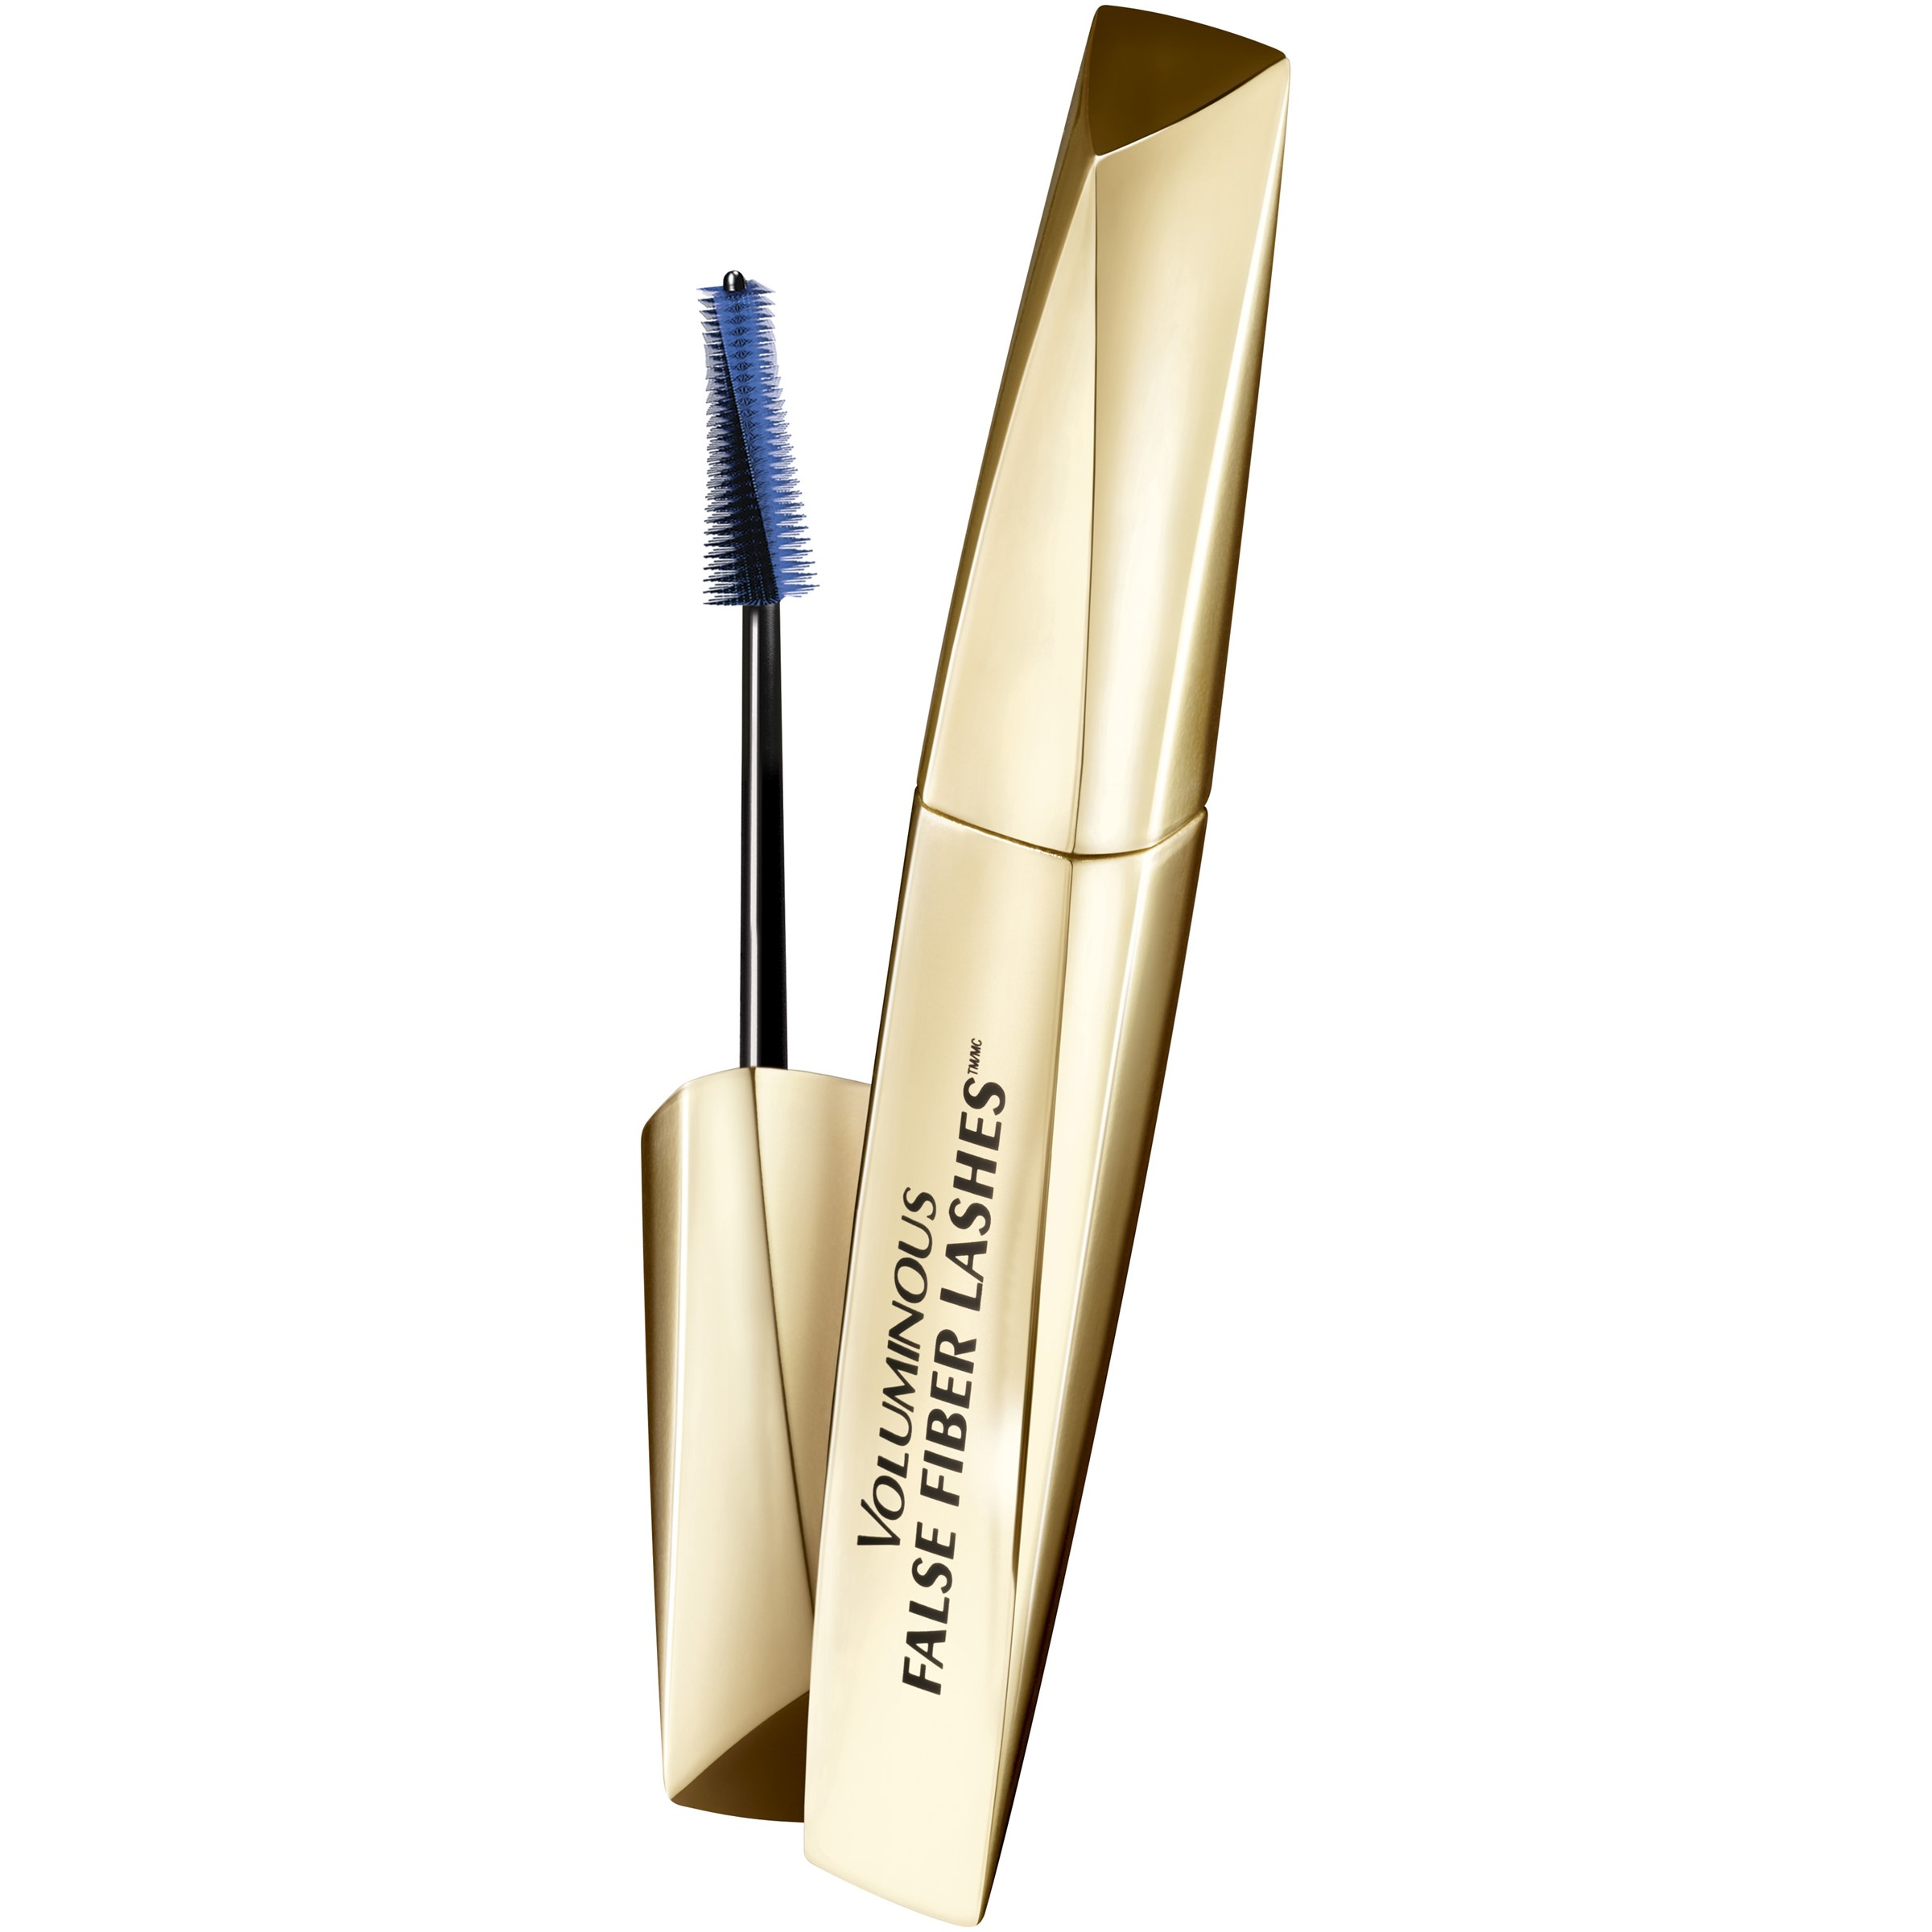 L'Oreal Paris Voluminous False Fiber Lashes Mascara, Blackest Black